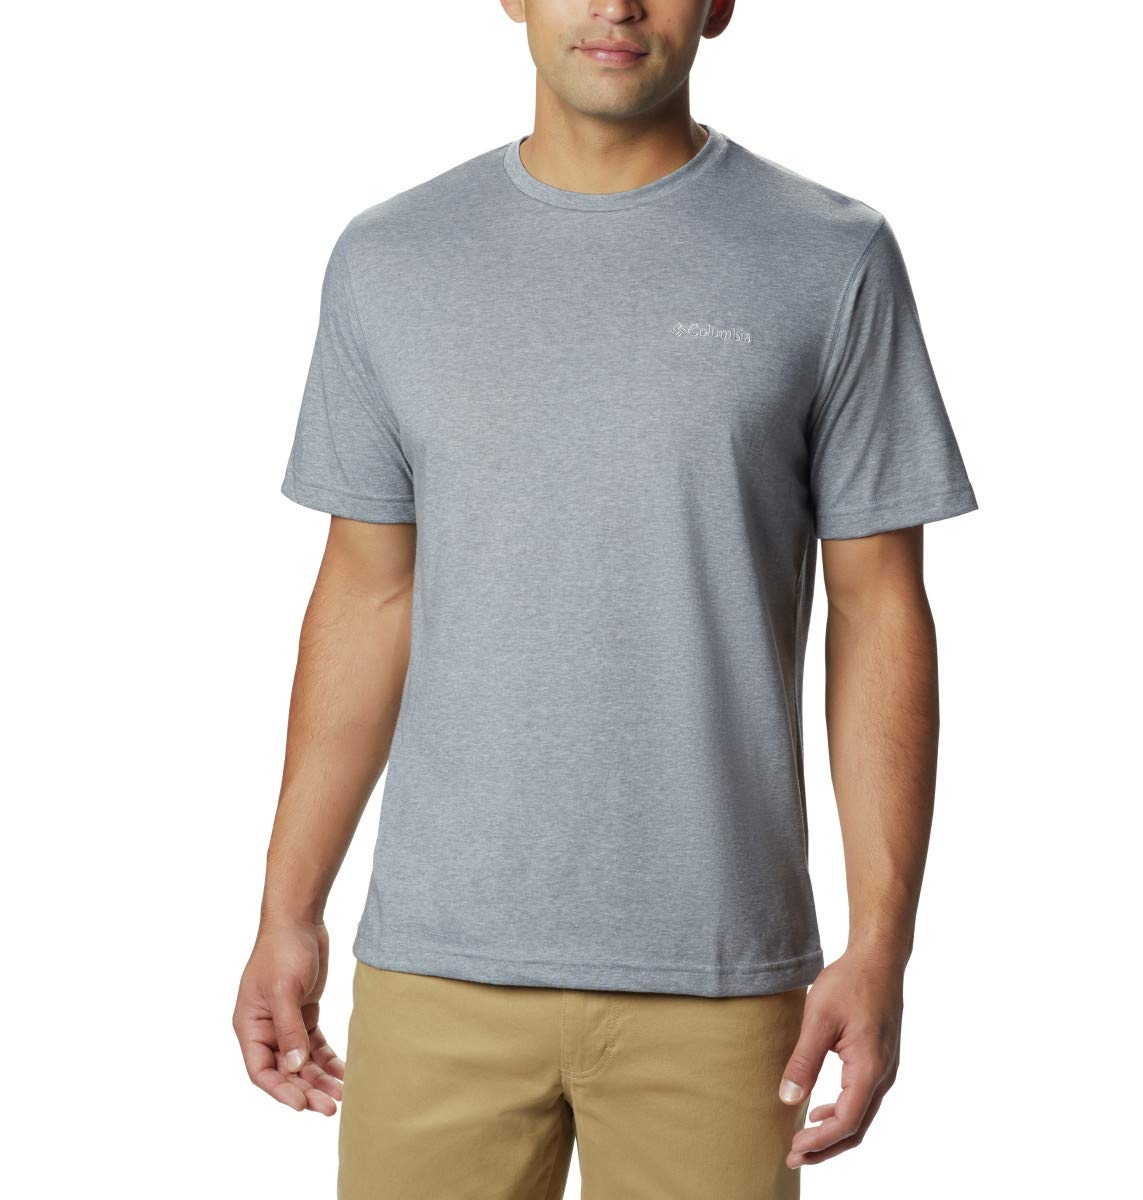 Columbia Men's Thistletown Park Crew Short Sleeve Tee, Small - Grey Ash Heather